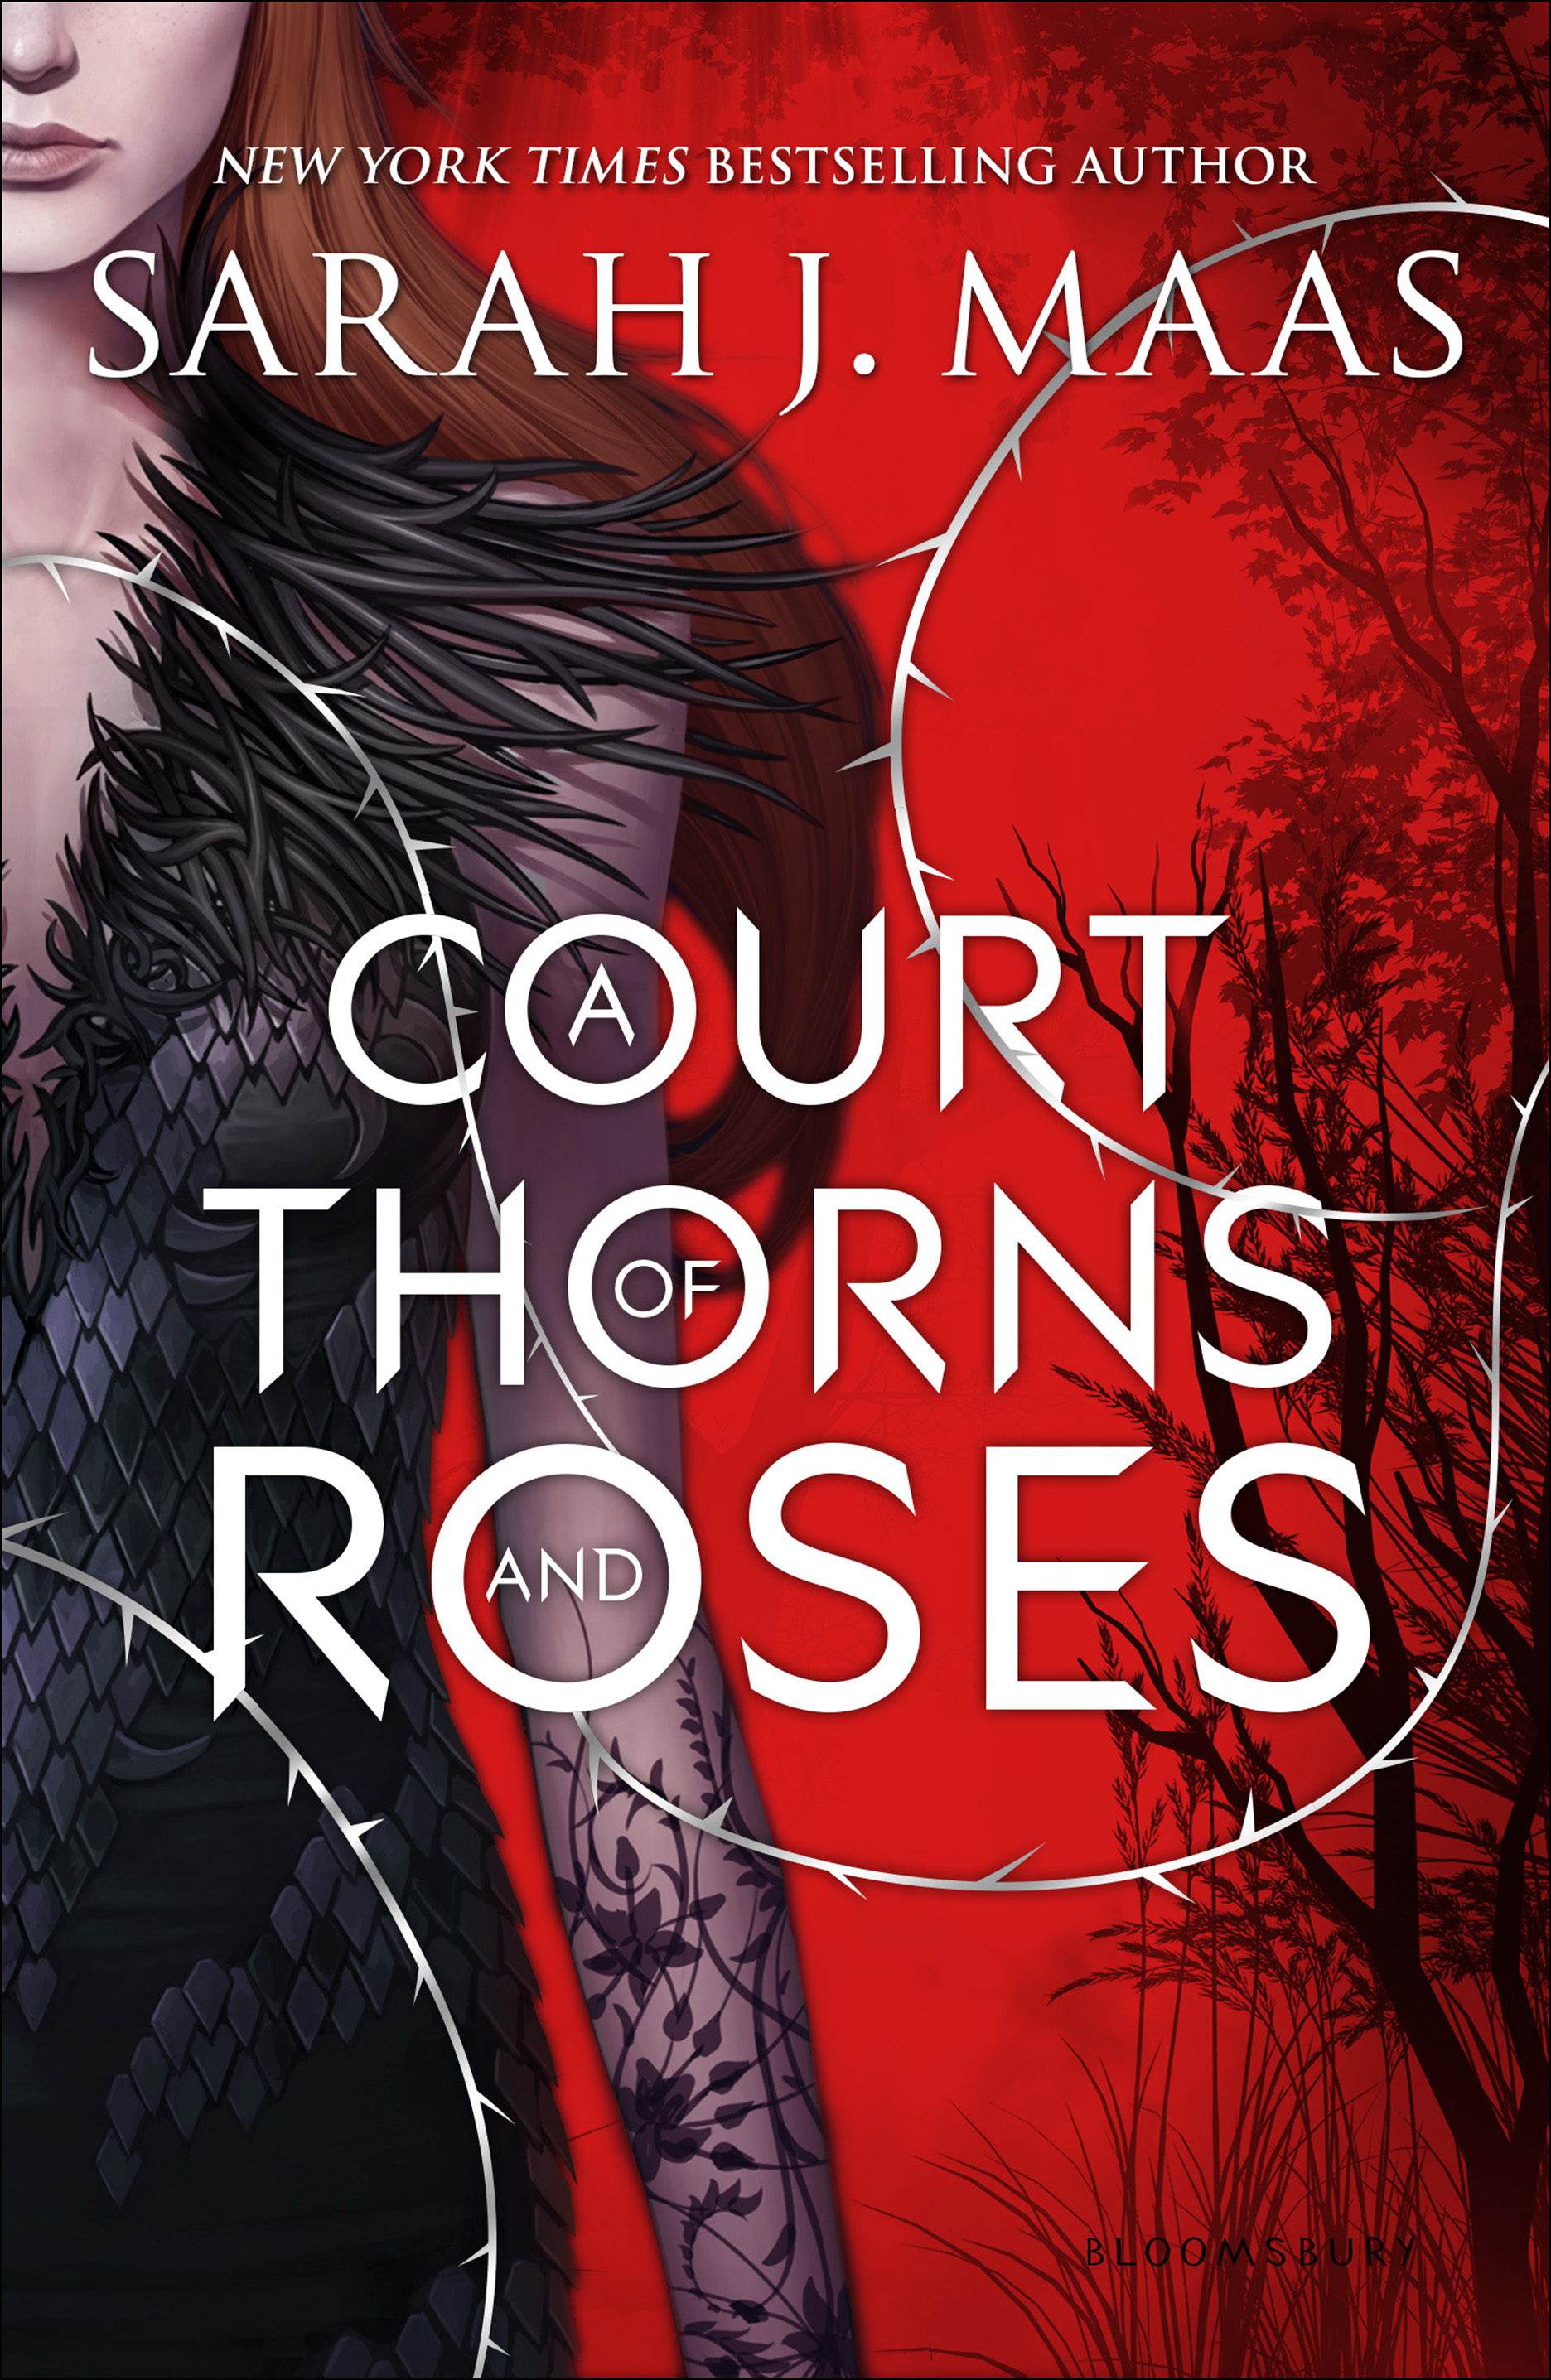 Image result for a court of thorns and roses